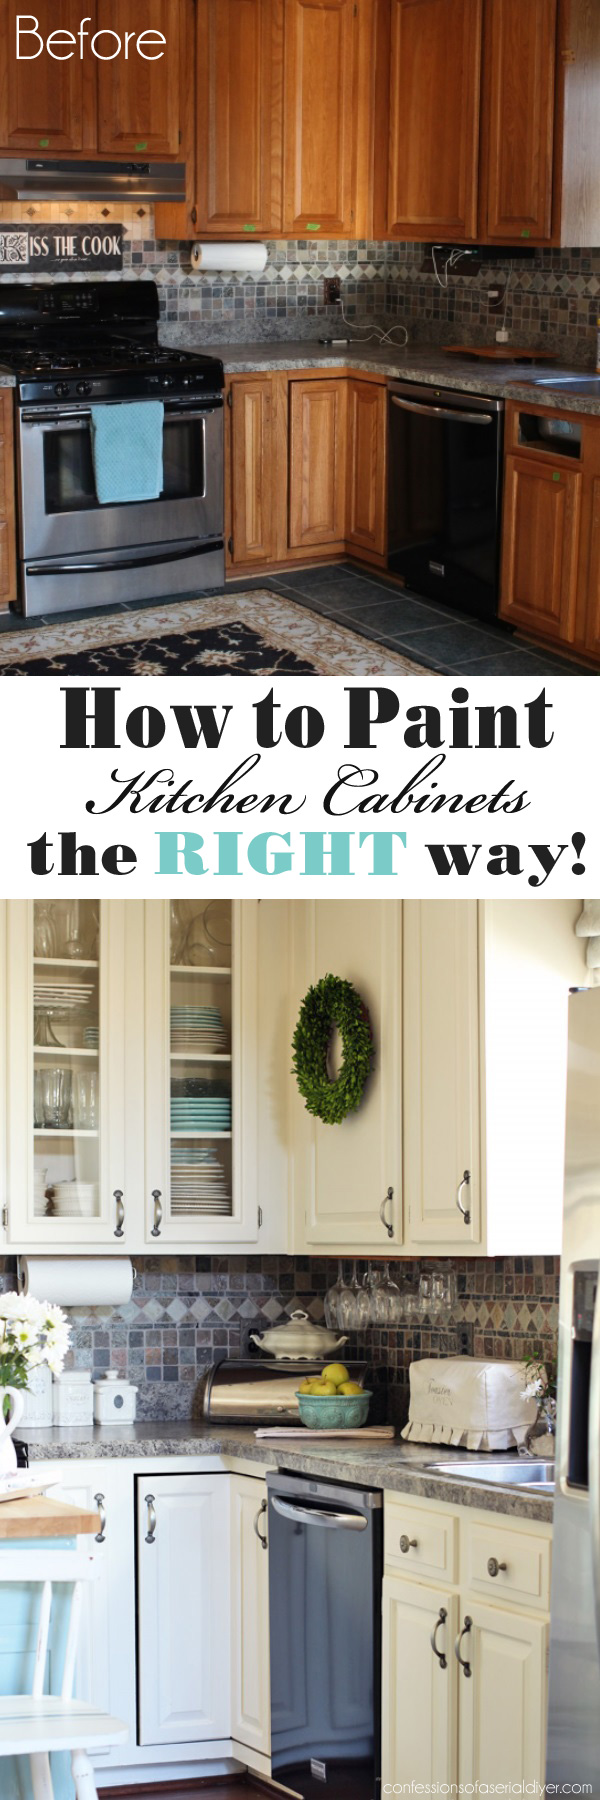 How to paint kitchen cabinets a step by step guide for Best way to clean painted kitchen cabinets